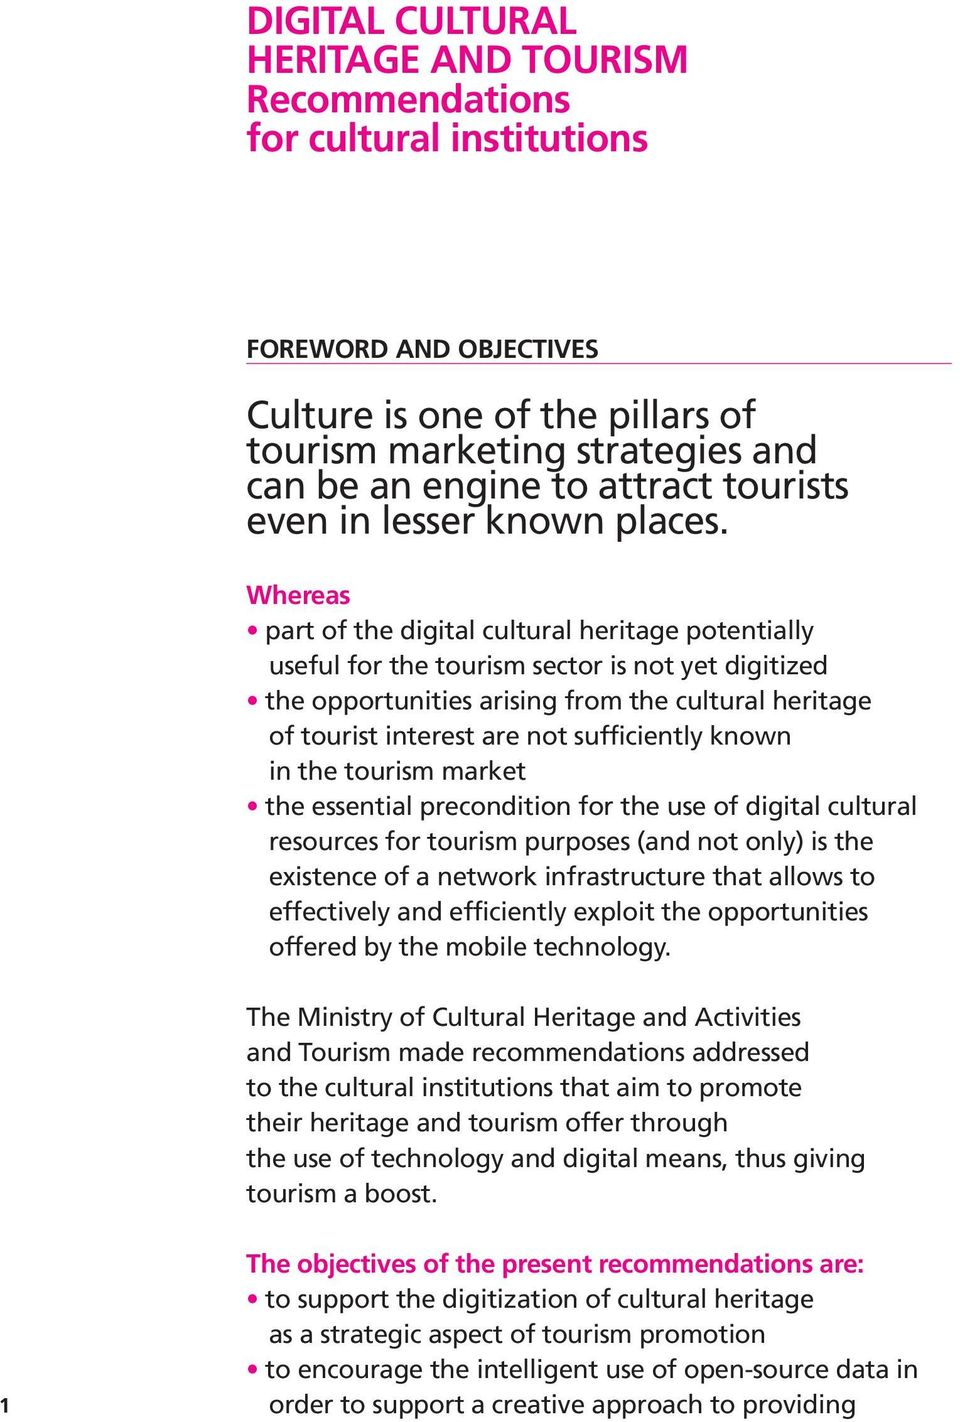 Whereas part of the digital cultural heritage potentially useful for the tourism sector is not yet digitized the opportunities arising from the cultural heritage of tourist interest are not